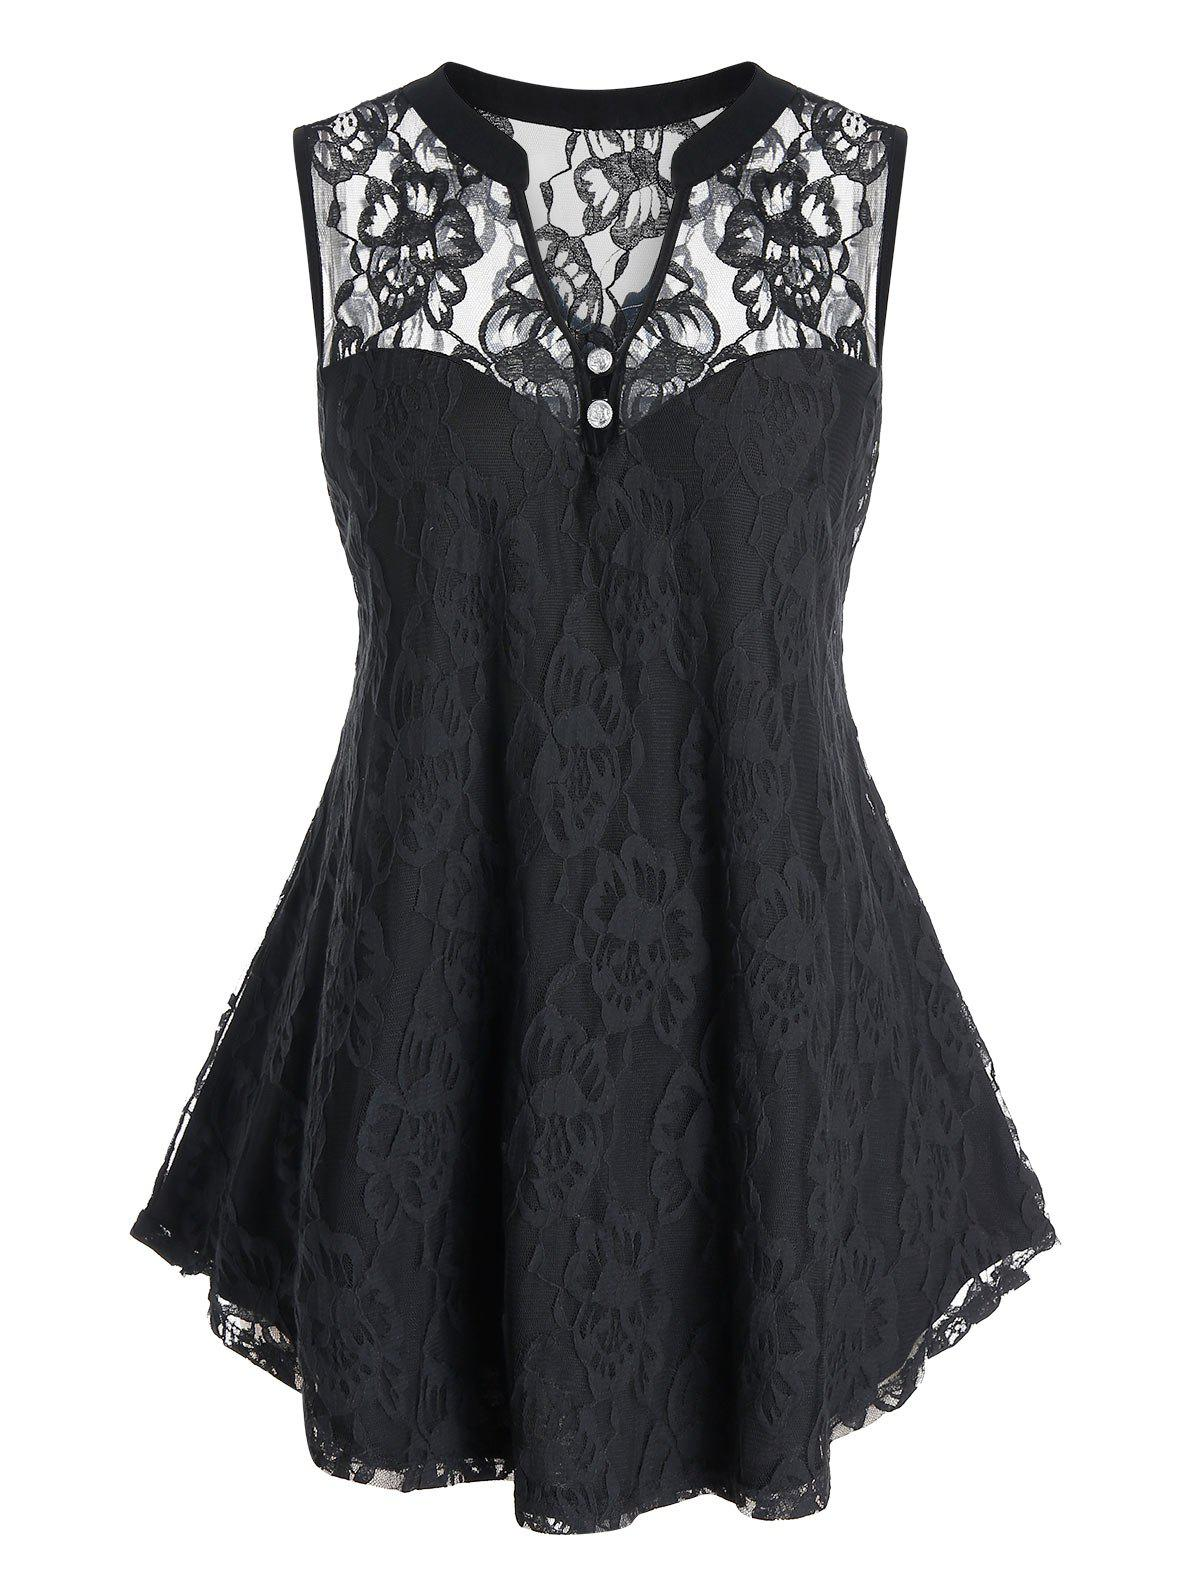 Plus Size Lace See Thru V Neck Curved Sleeveless Top фото